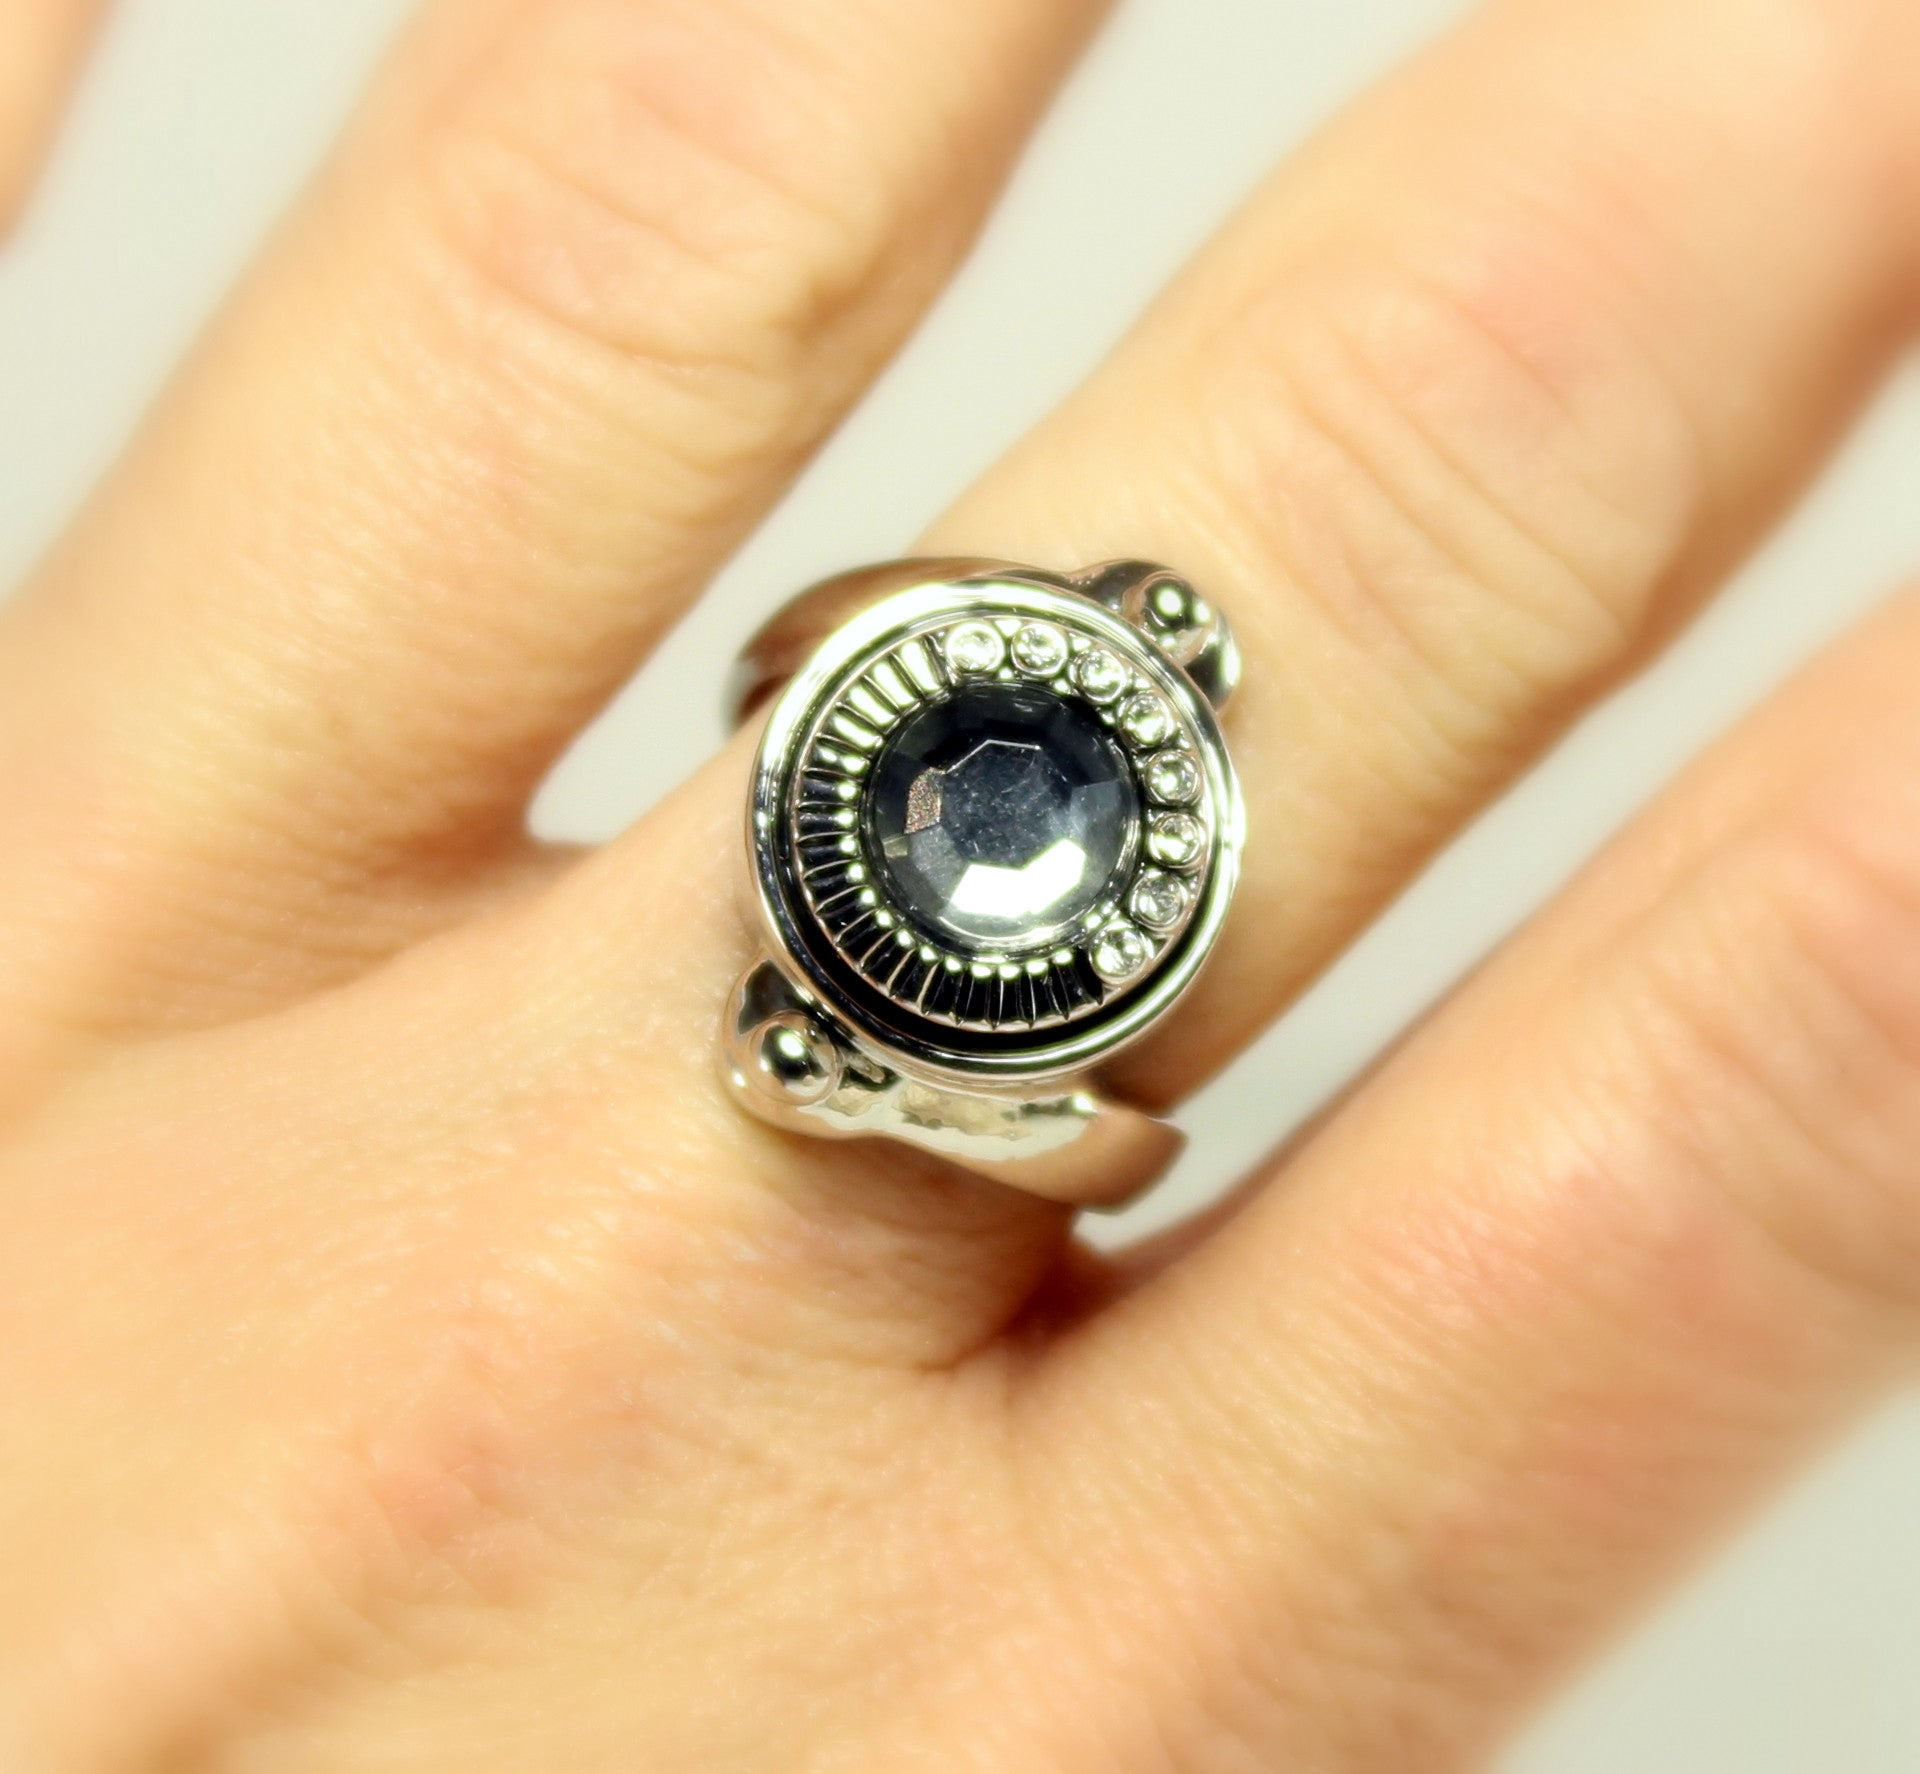 Sparkle Snap Ring-Size 7 (fits small 12mm Sparkle Snaps only)